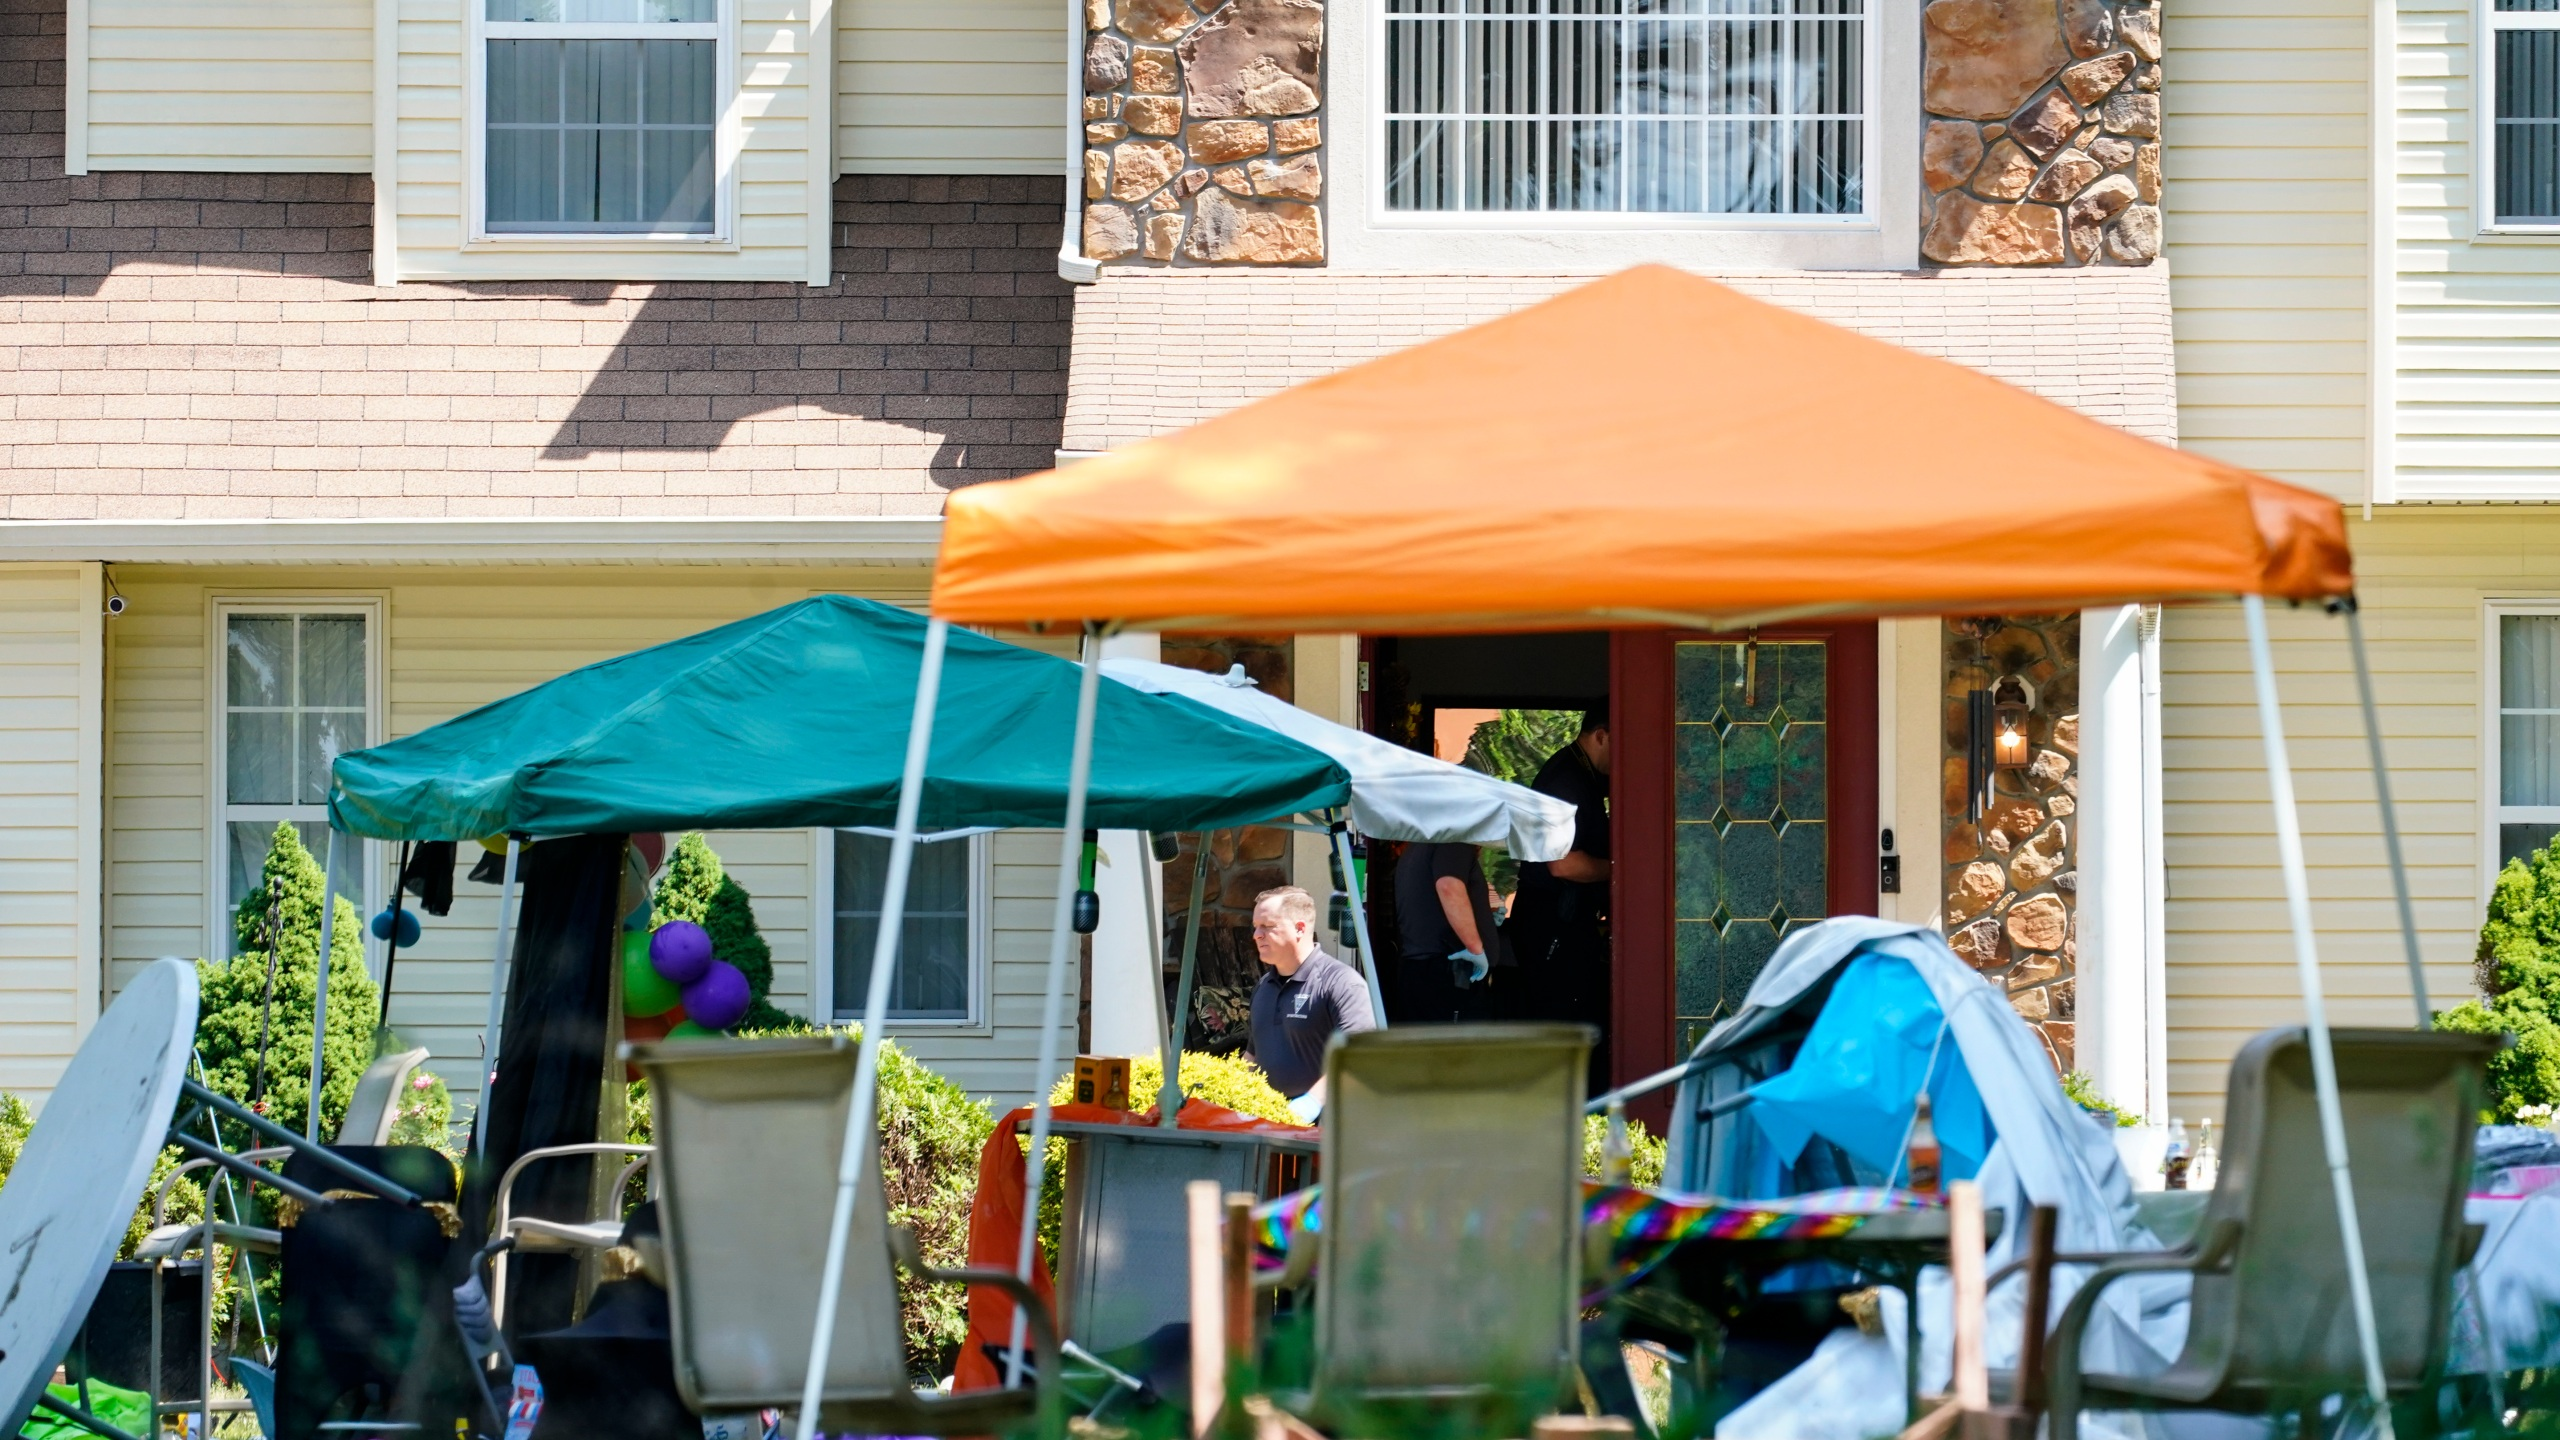 Investigators works the scene of a shooting in Fairfield Township, N.J., Sunday, May 23, 2021. (AP Photo/Matt Rourke)